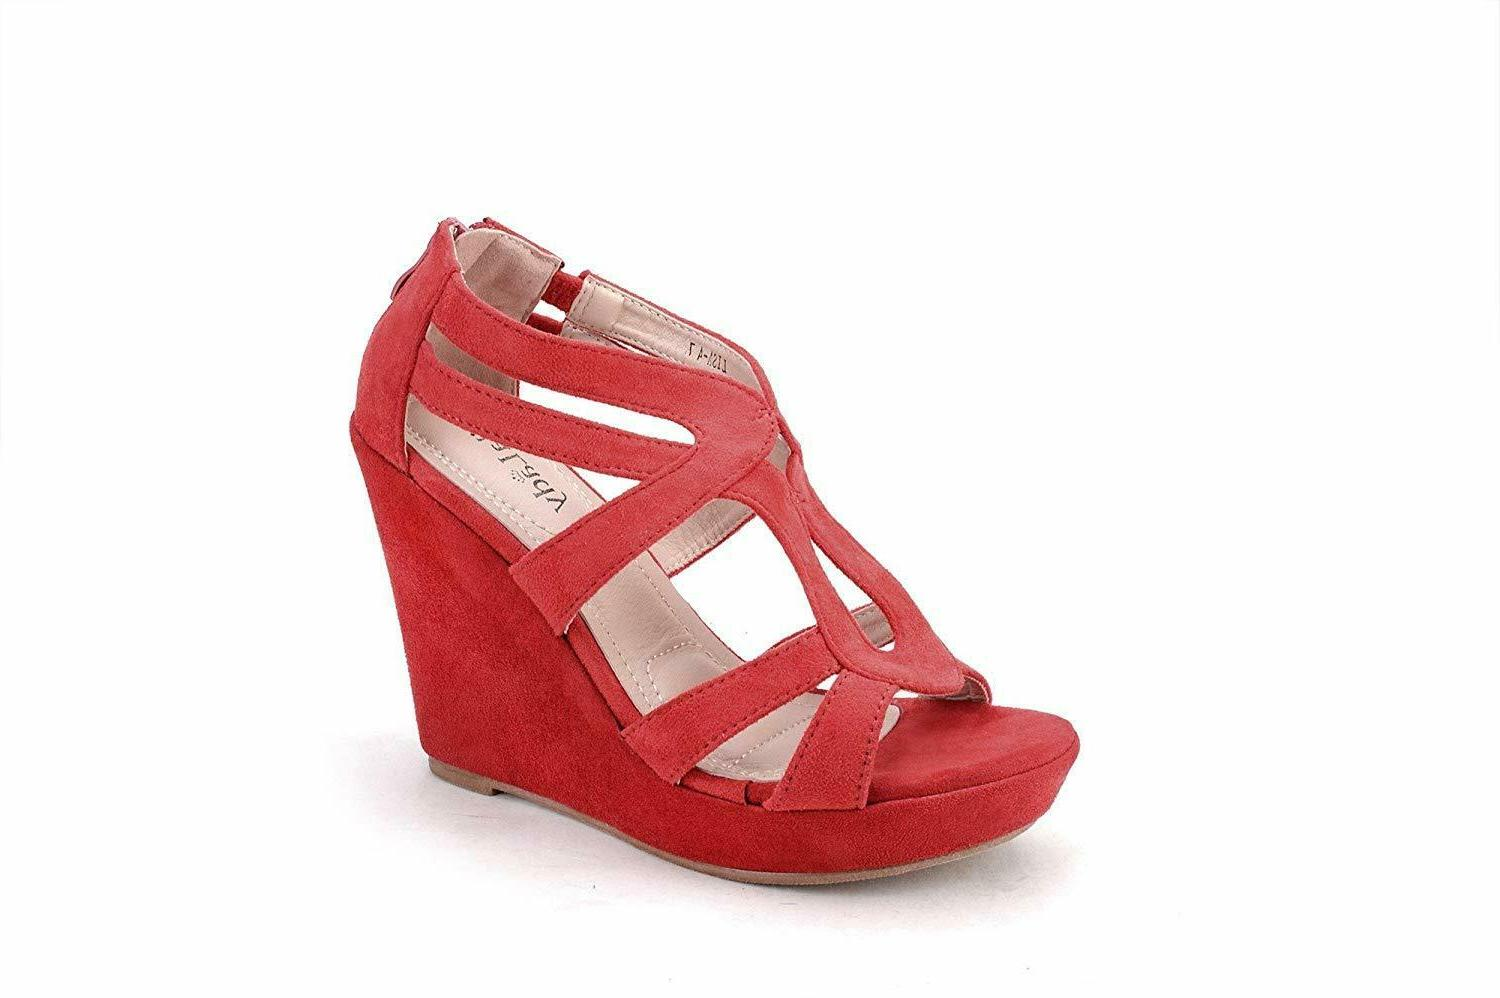 Mila Lady Zippered Platform Heeled Sandals Shoes